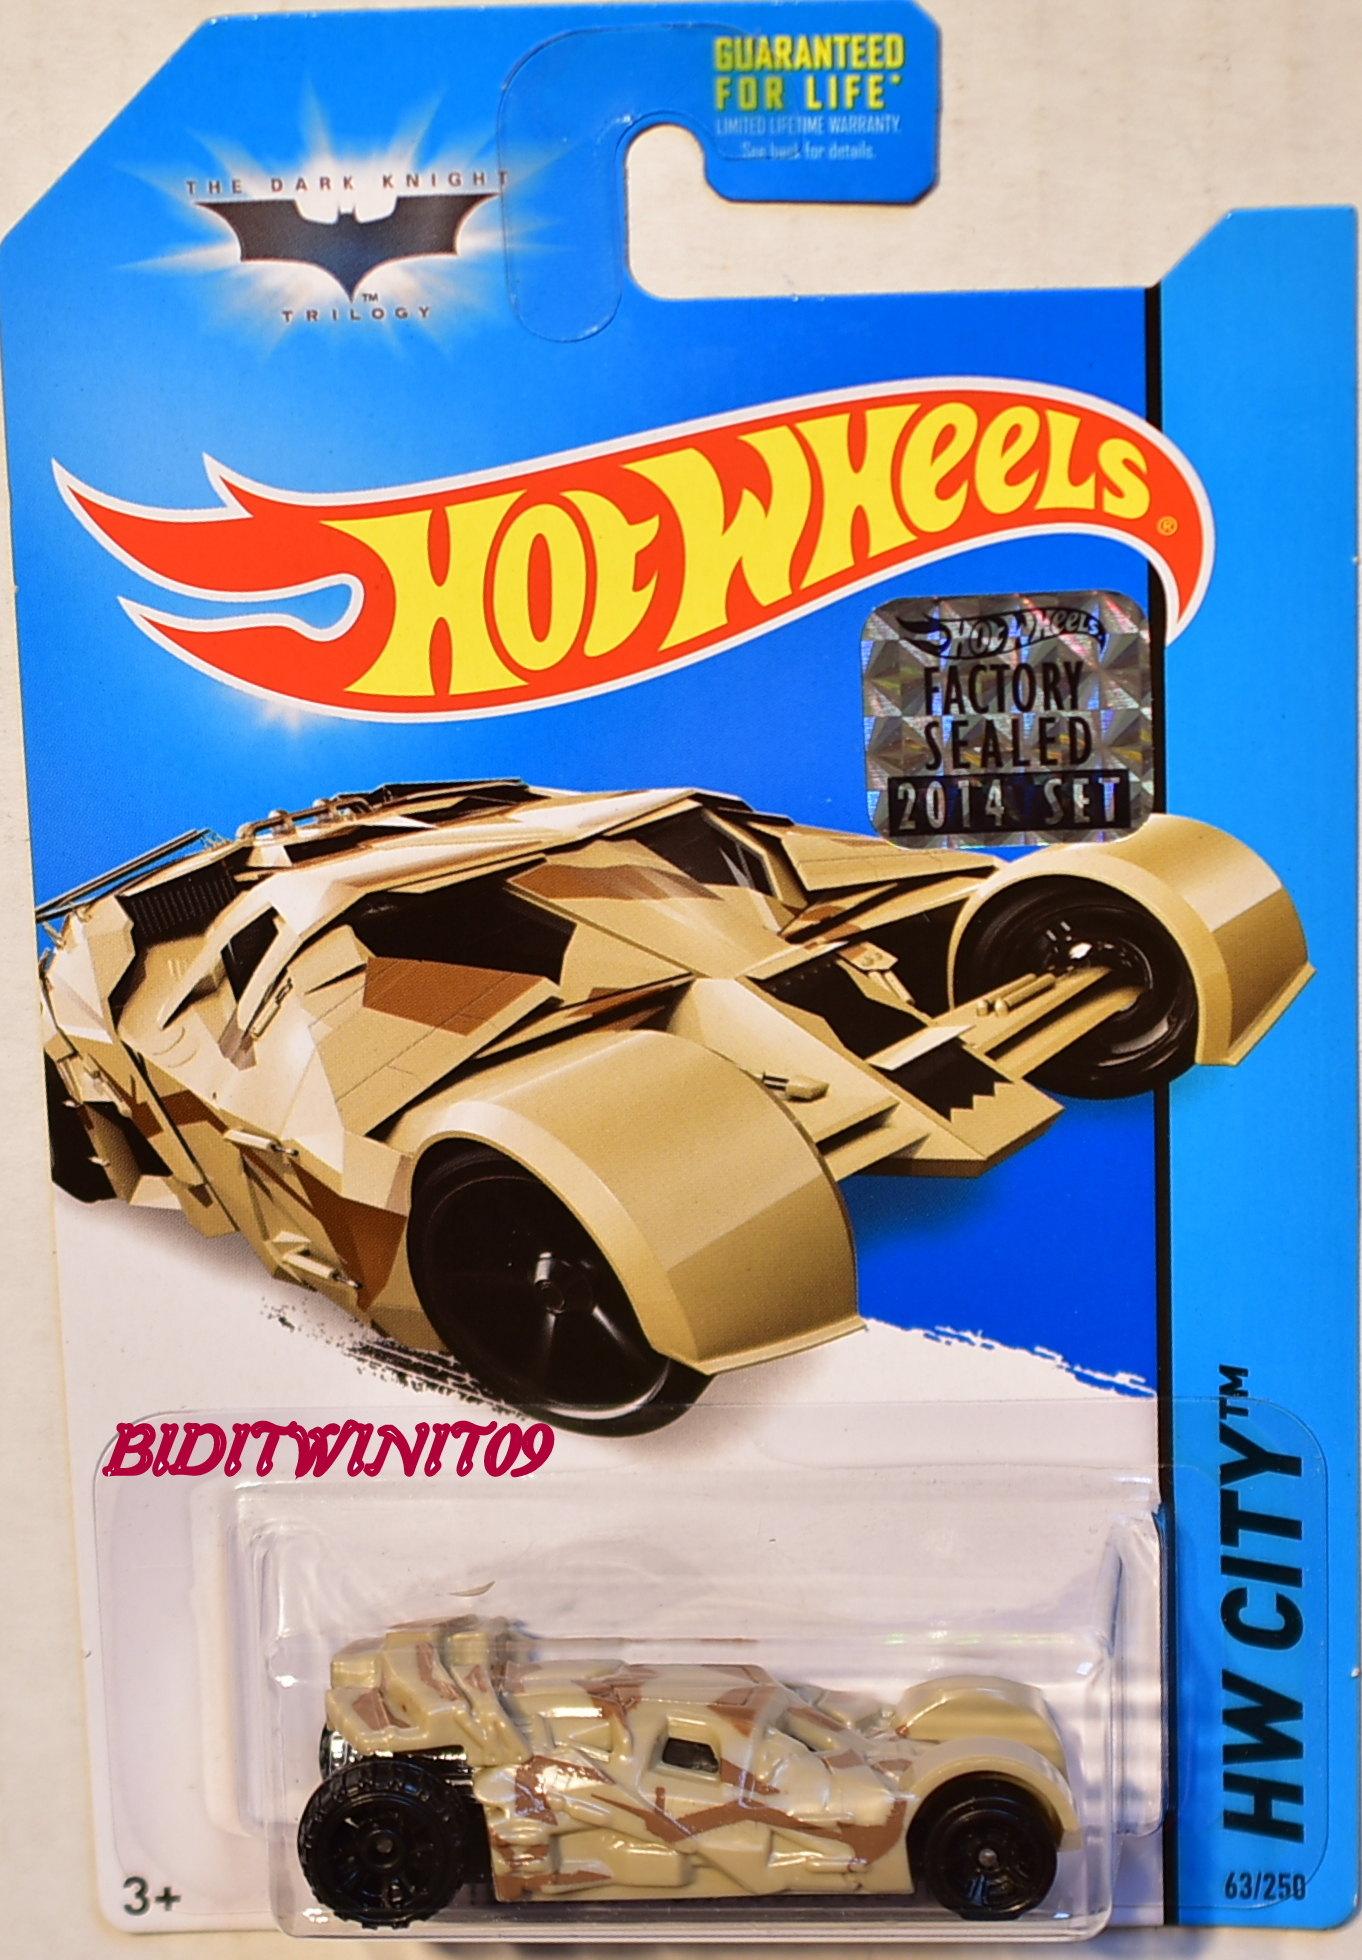 HOT WHEELS 2014 HW CITY THE TUMBLER - CAMOUFLAGE VERSION FACTORY SEALED